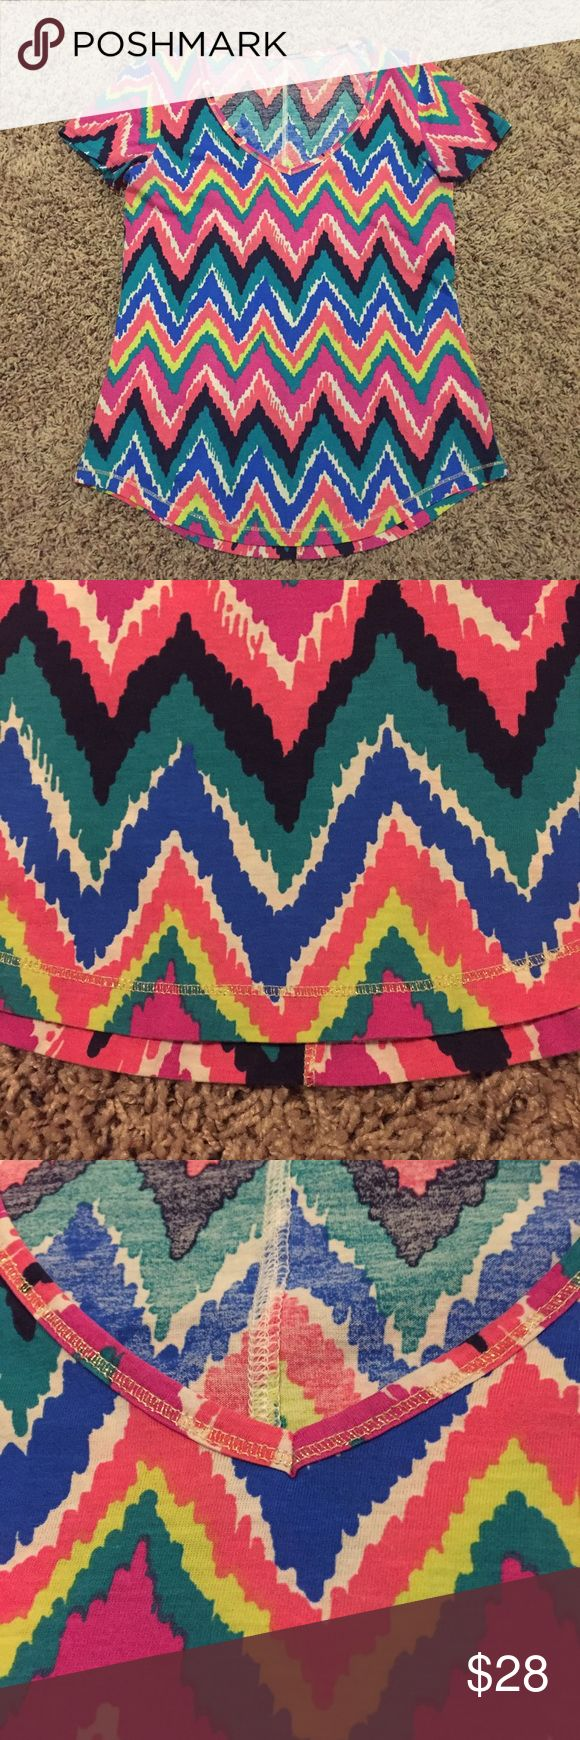 Lilly Pulitzer Cynthia Tee Colorful Chevron Top Excellent Used Condition! Lilly Pulitzer Tops Tees - Short Sleeve